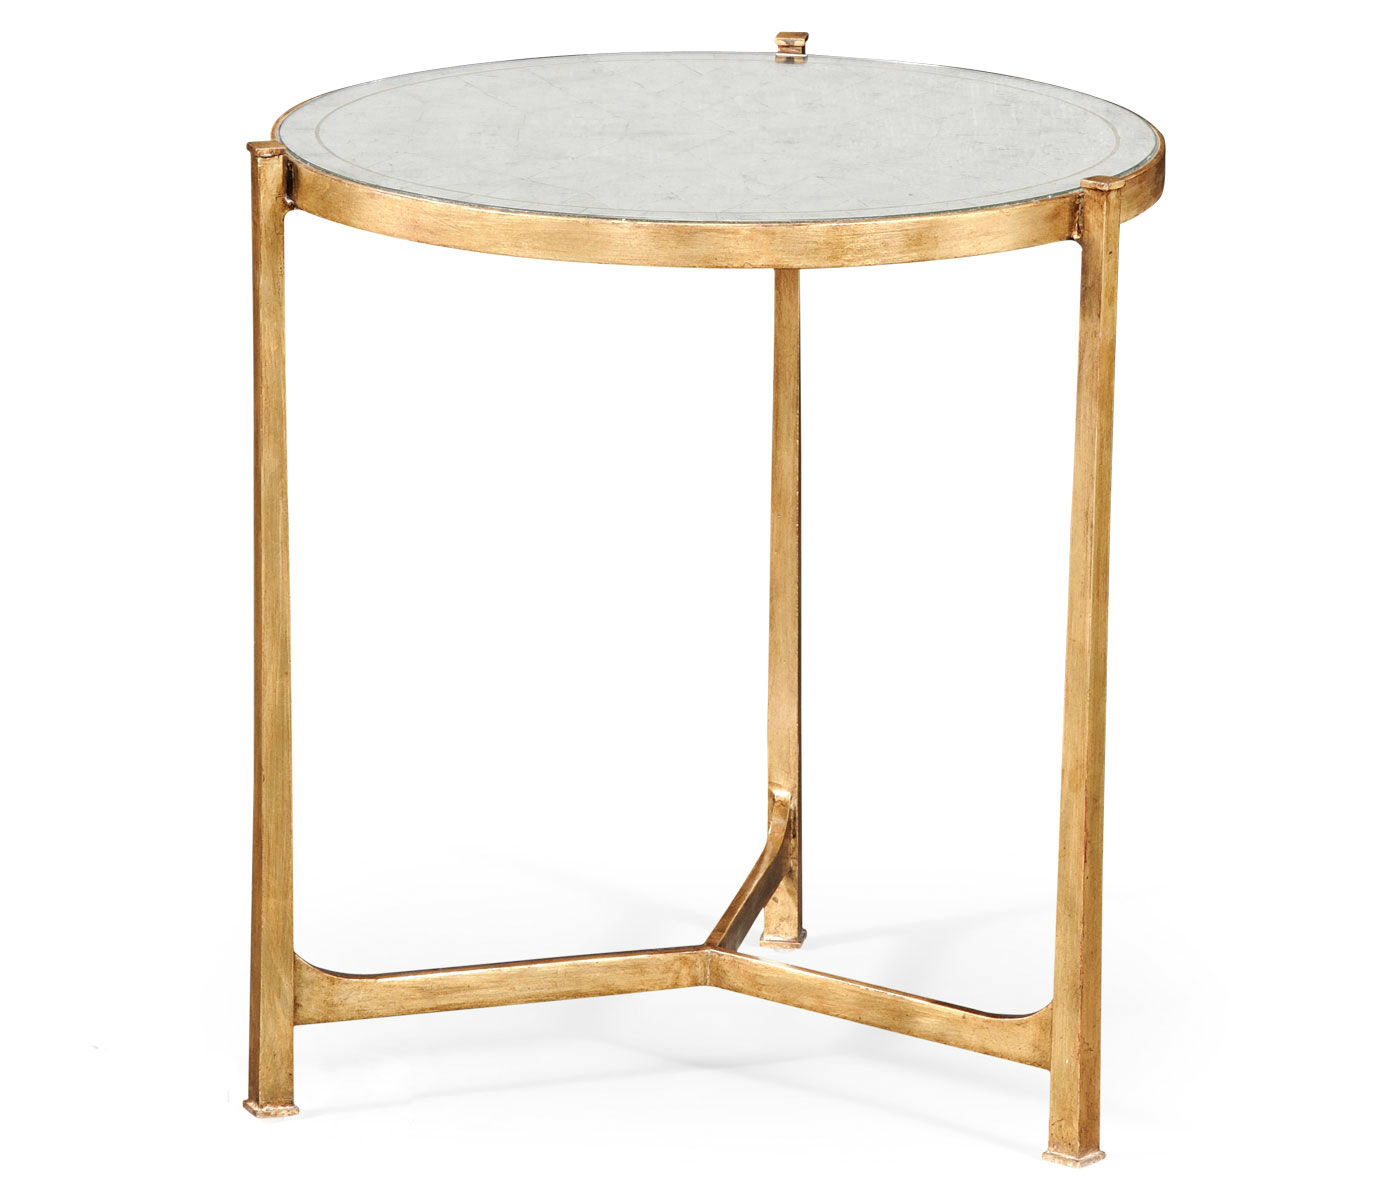 gold side table tables end tall accent elegant antiqued mirrored gilt partner console coffee available hospitality campaign cream colored tablecloth nic umbrella furniture modern